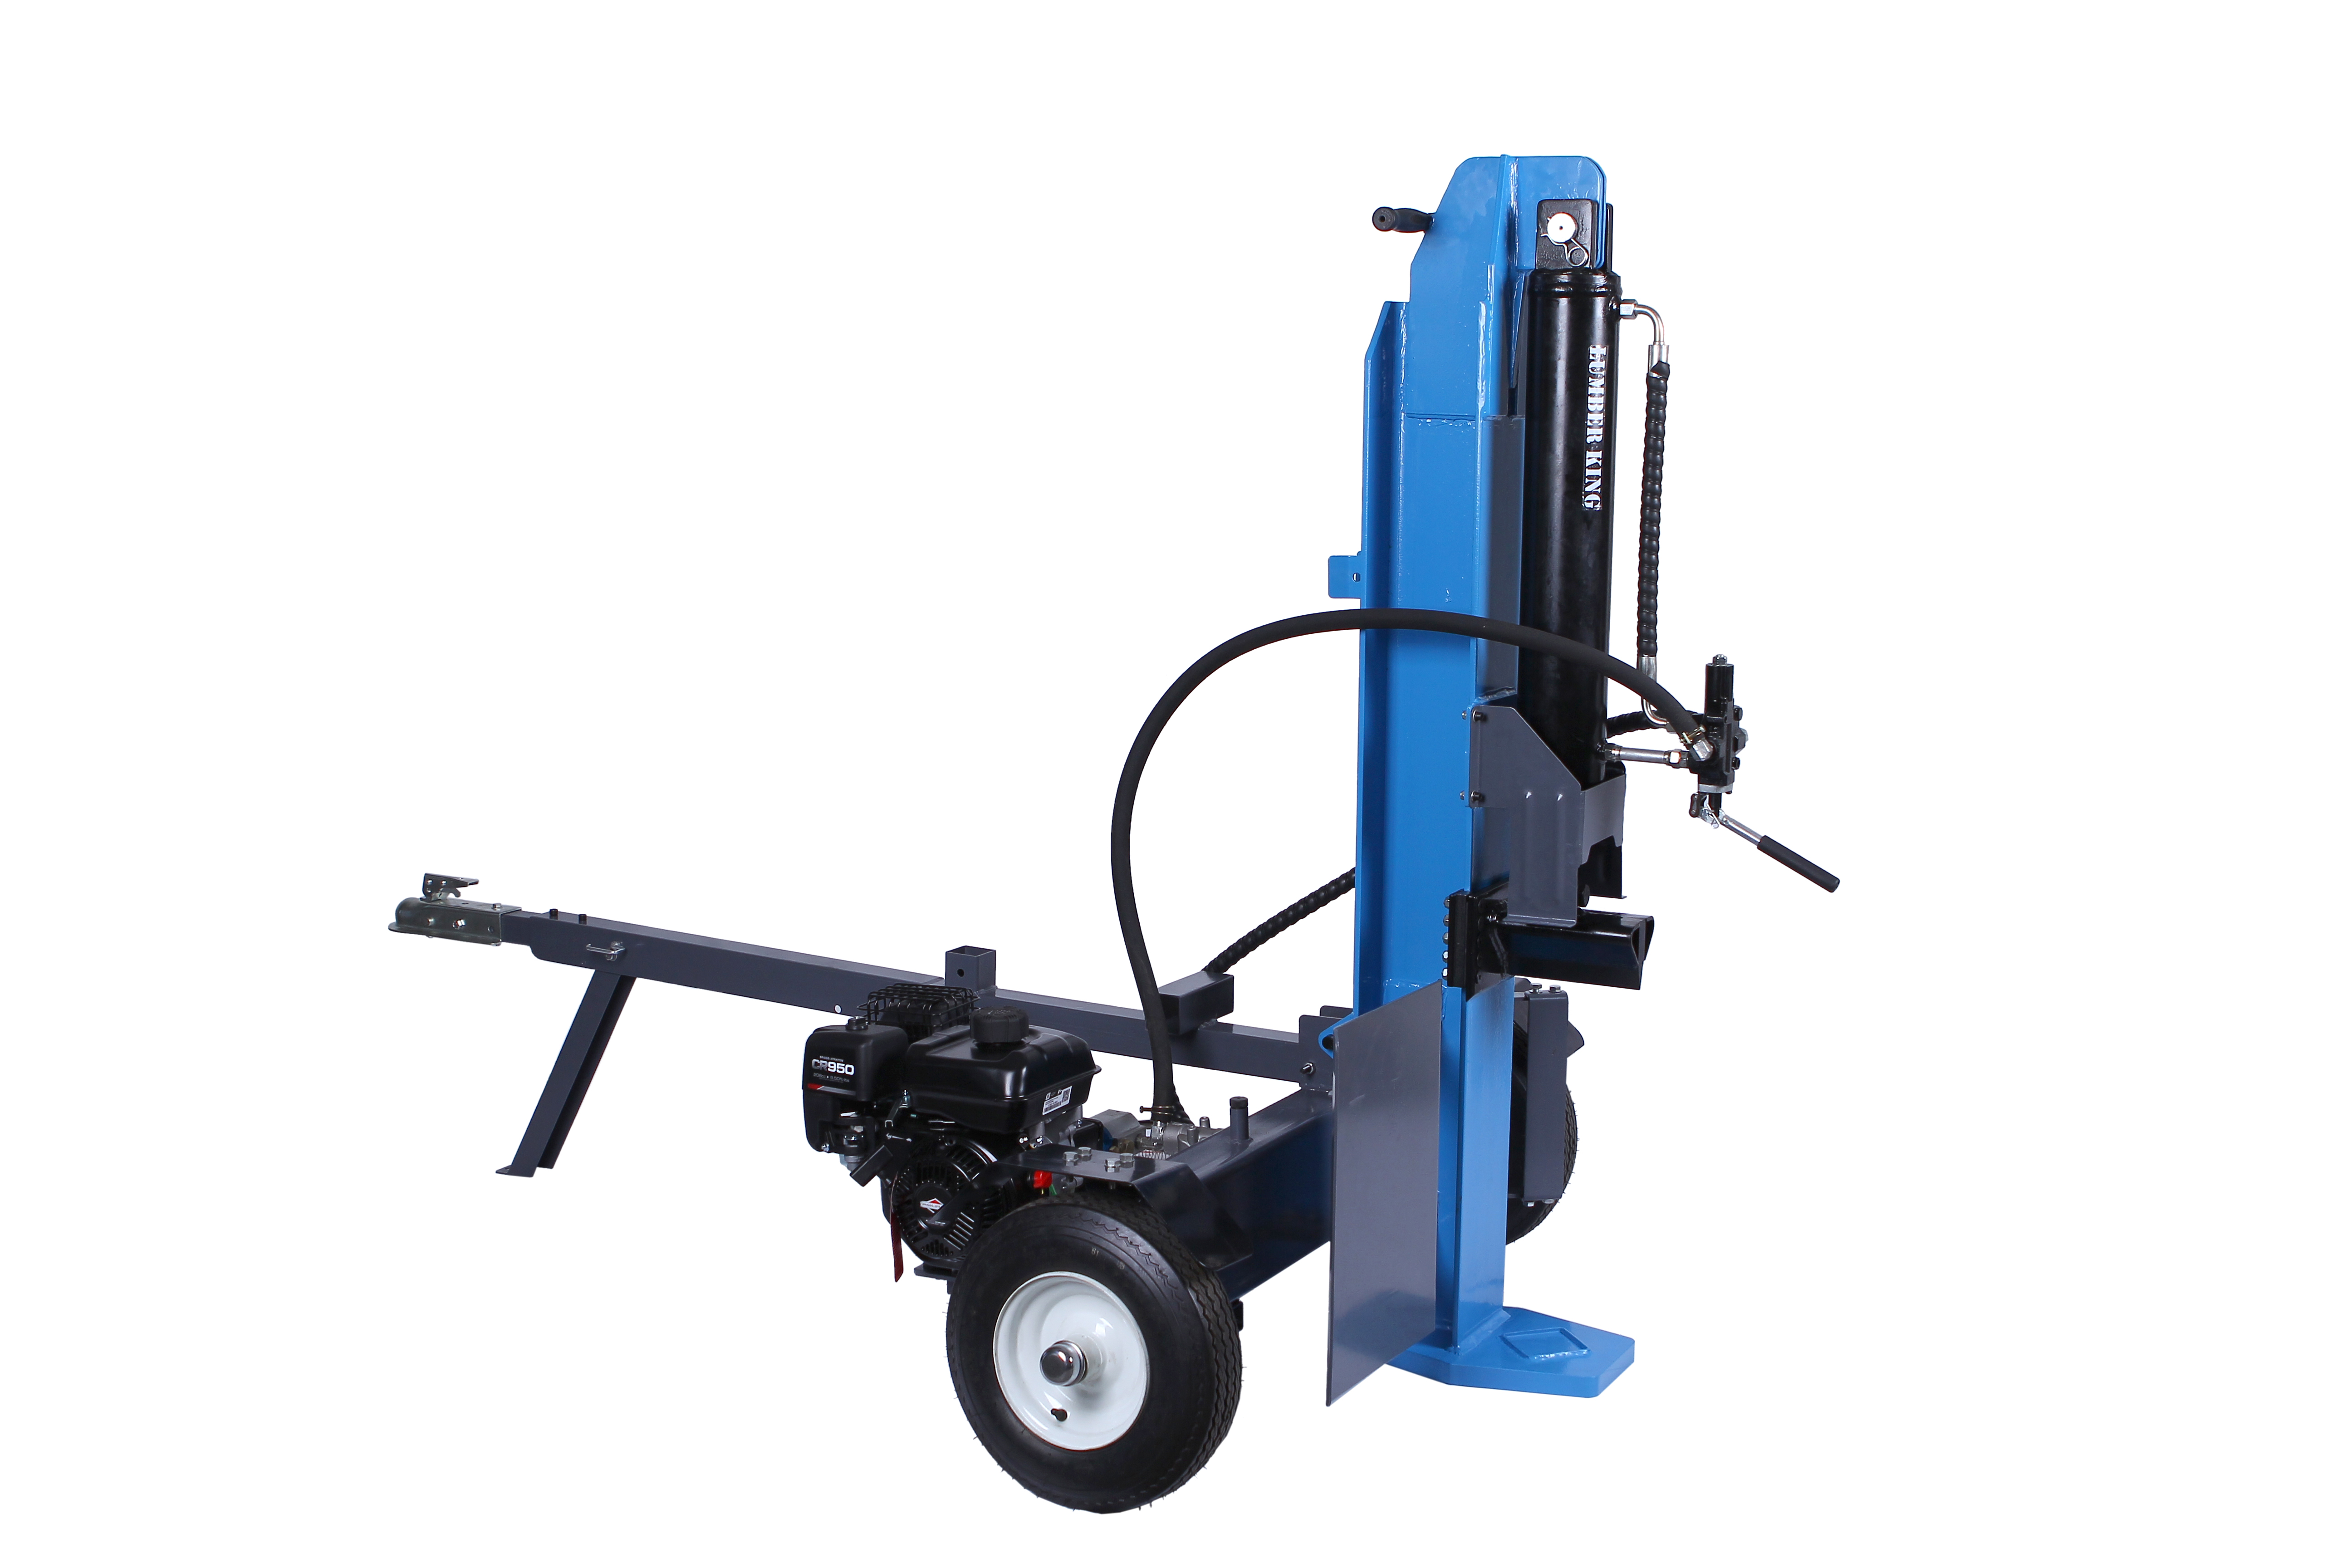 how to make a log splitter cycle faster